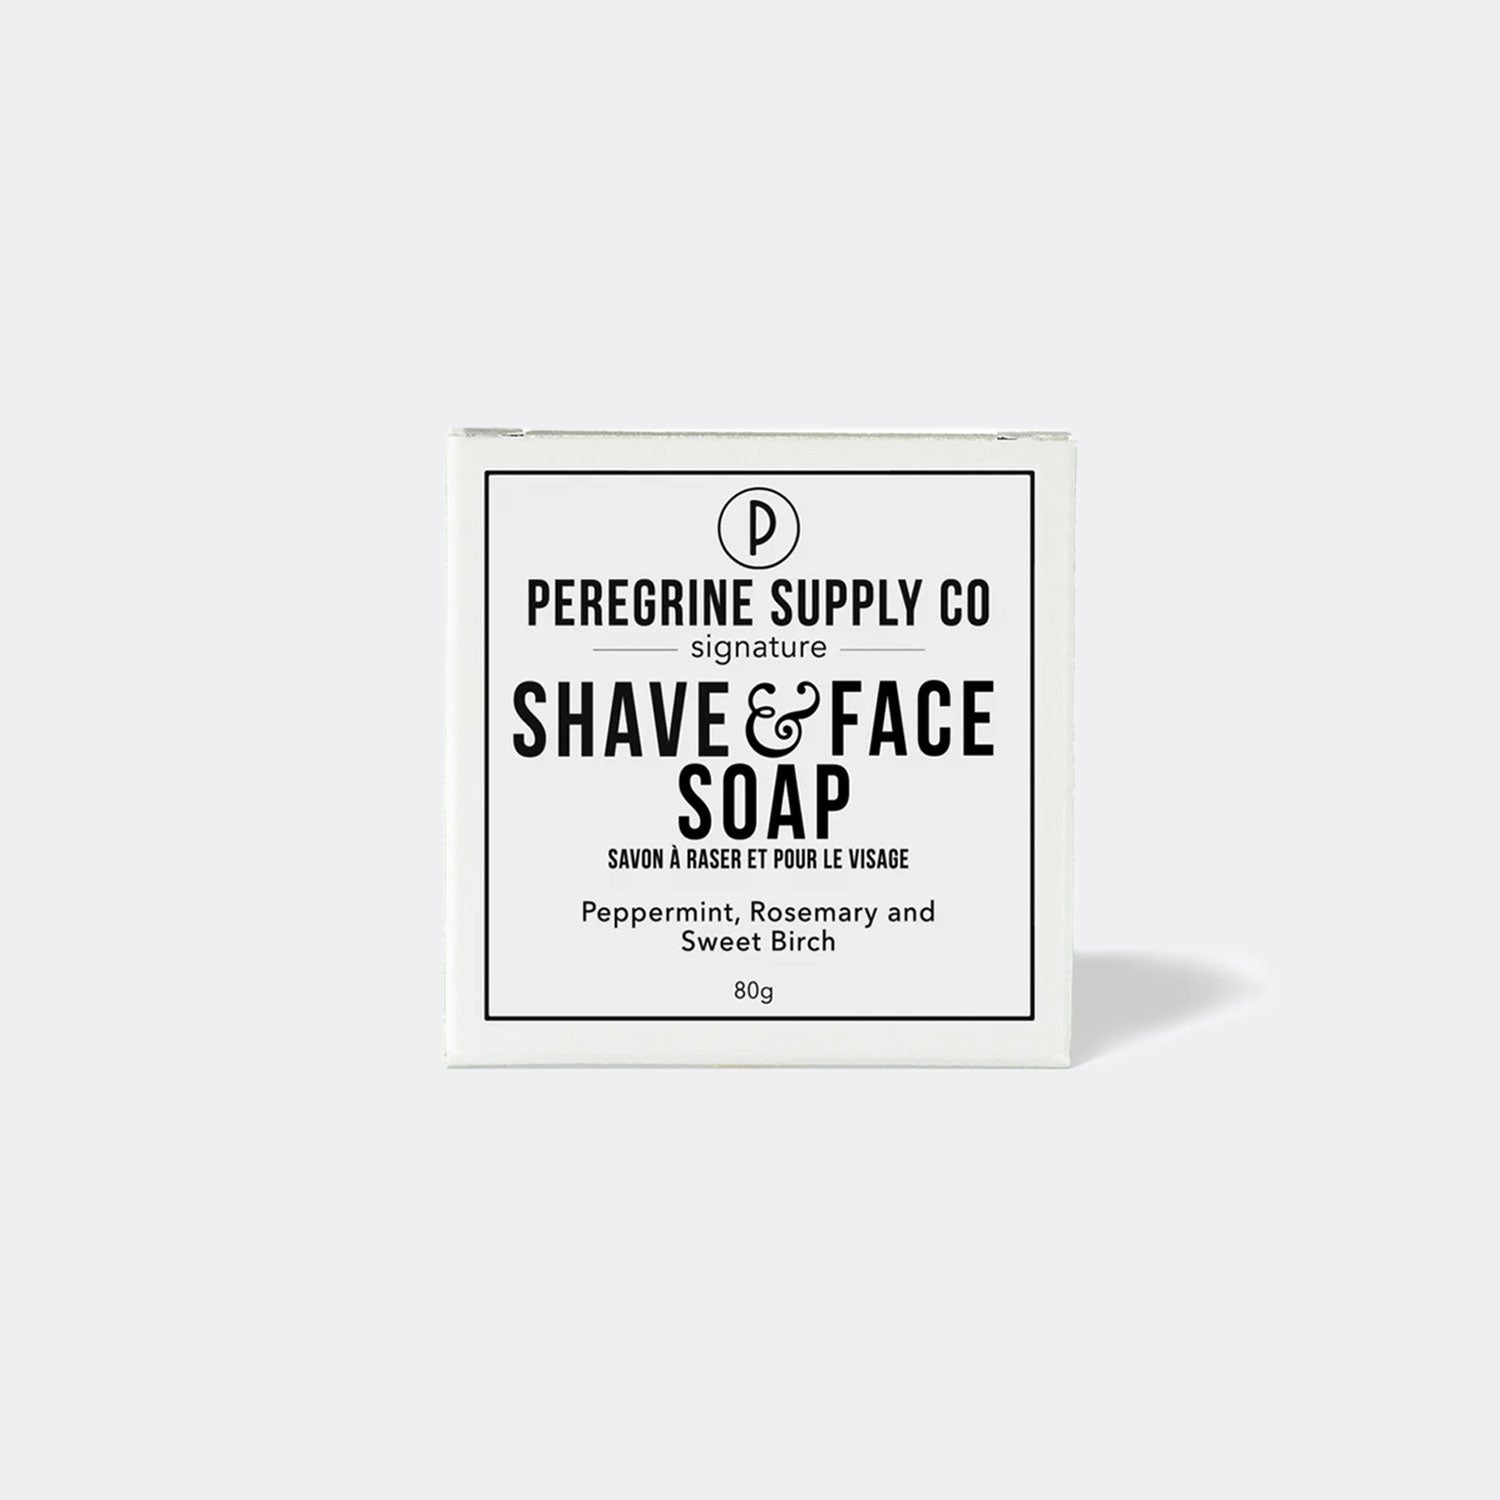 Peregrine Supply Co. Shave & Face Soap